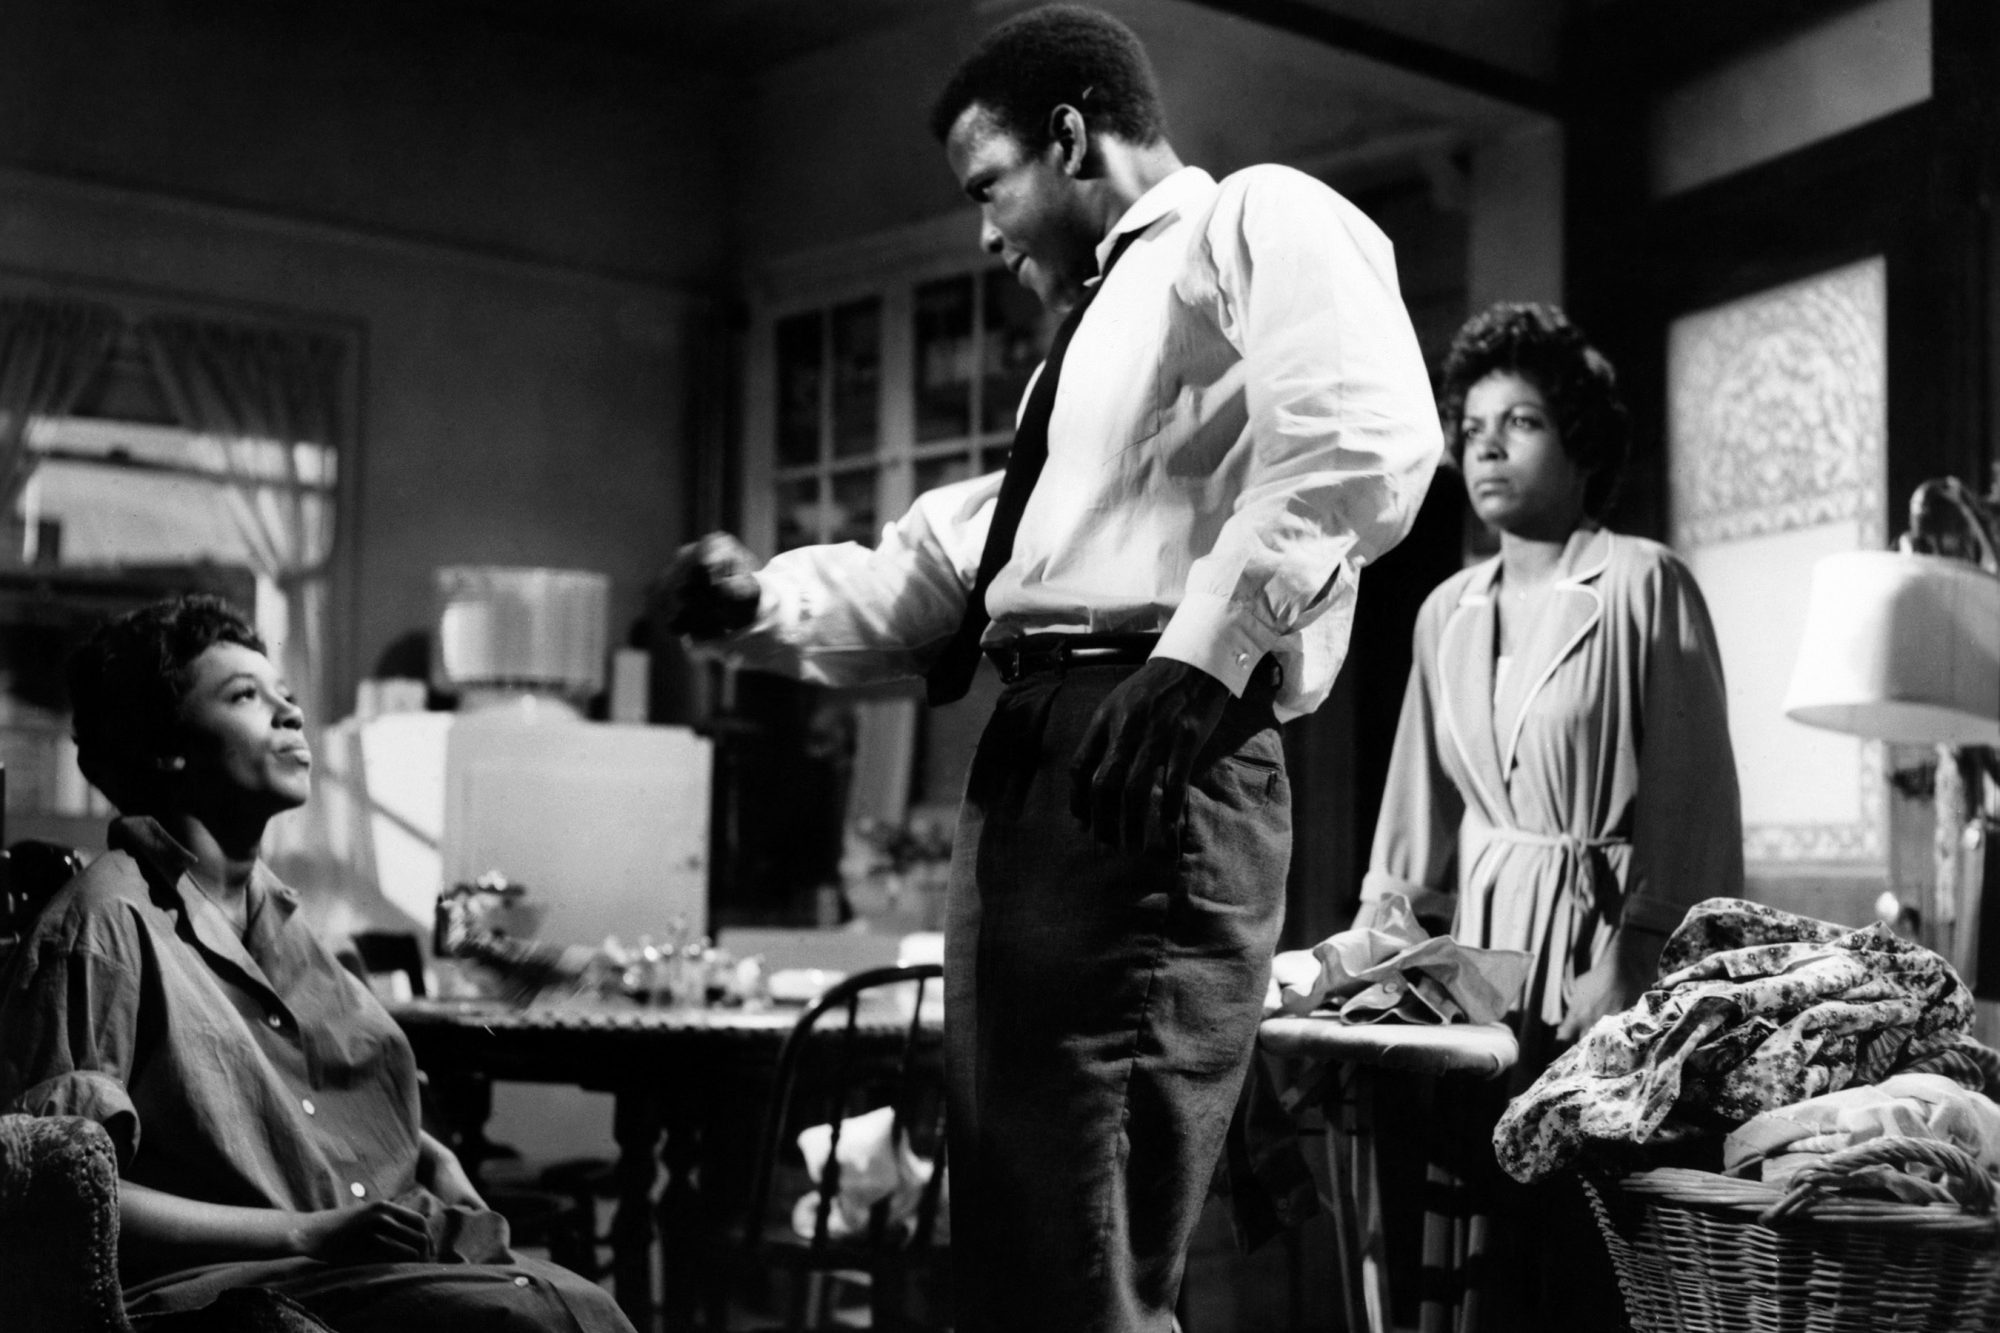 A RAISIN IN THE SUN, from left: Diana Sands, Sidney Poitier, Ruby Dee, 1961 araisininthesun-fsct03(a